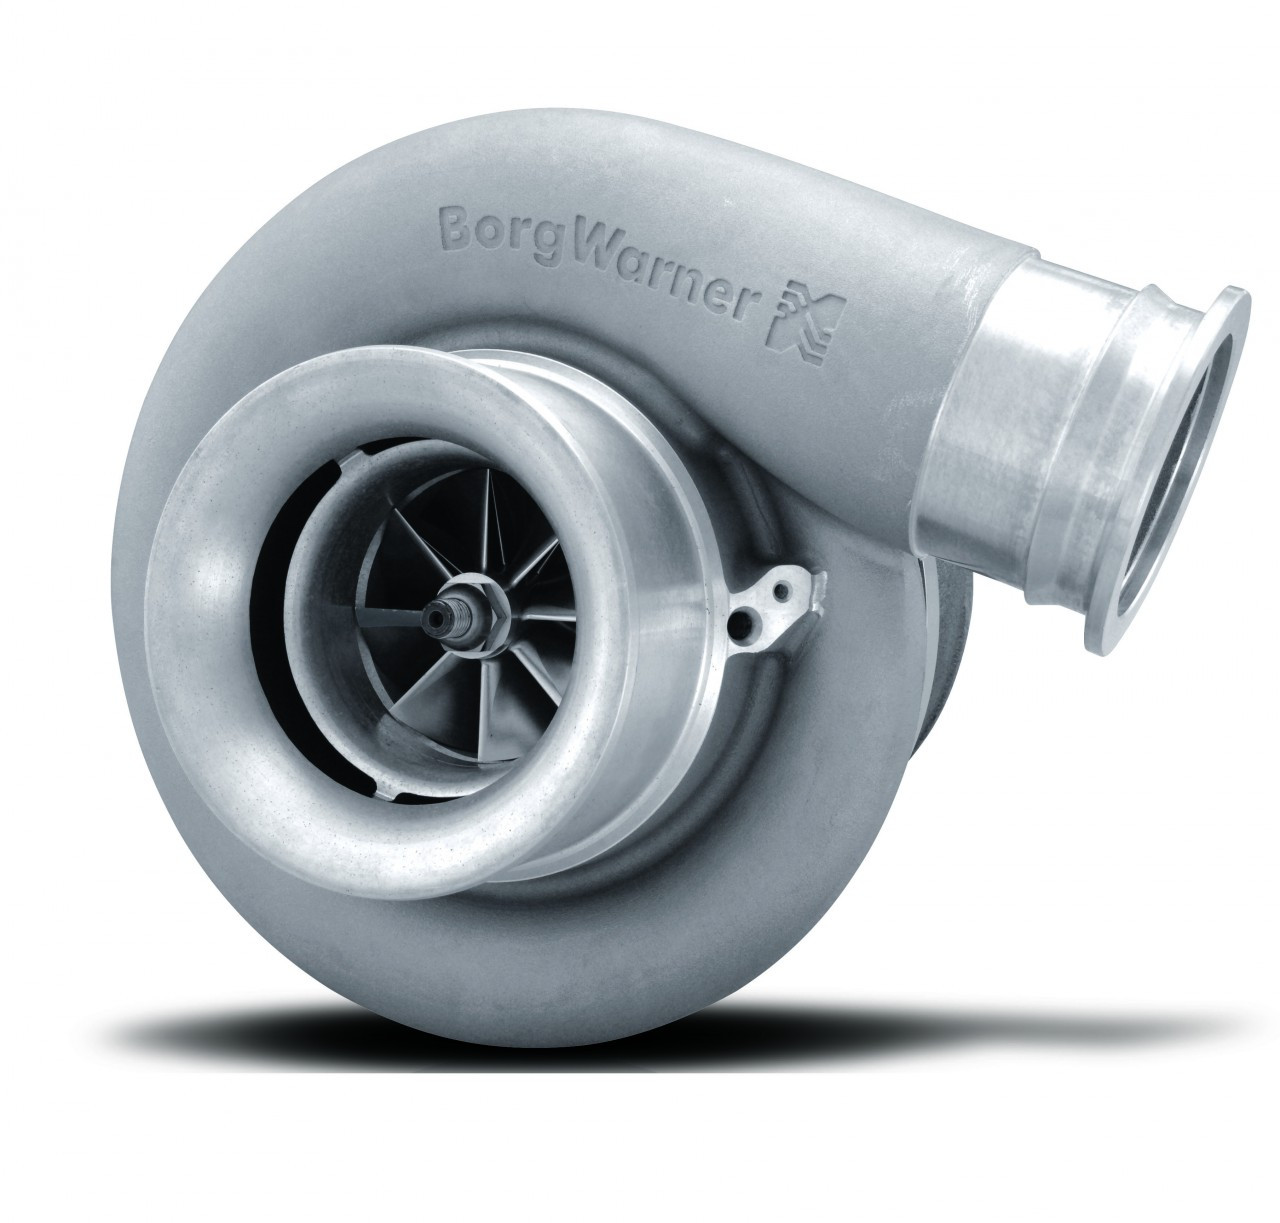 Precision Turbo Decal: Borg Warner S500SX Turbocharger (88mm)